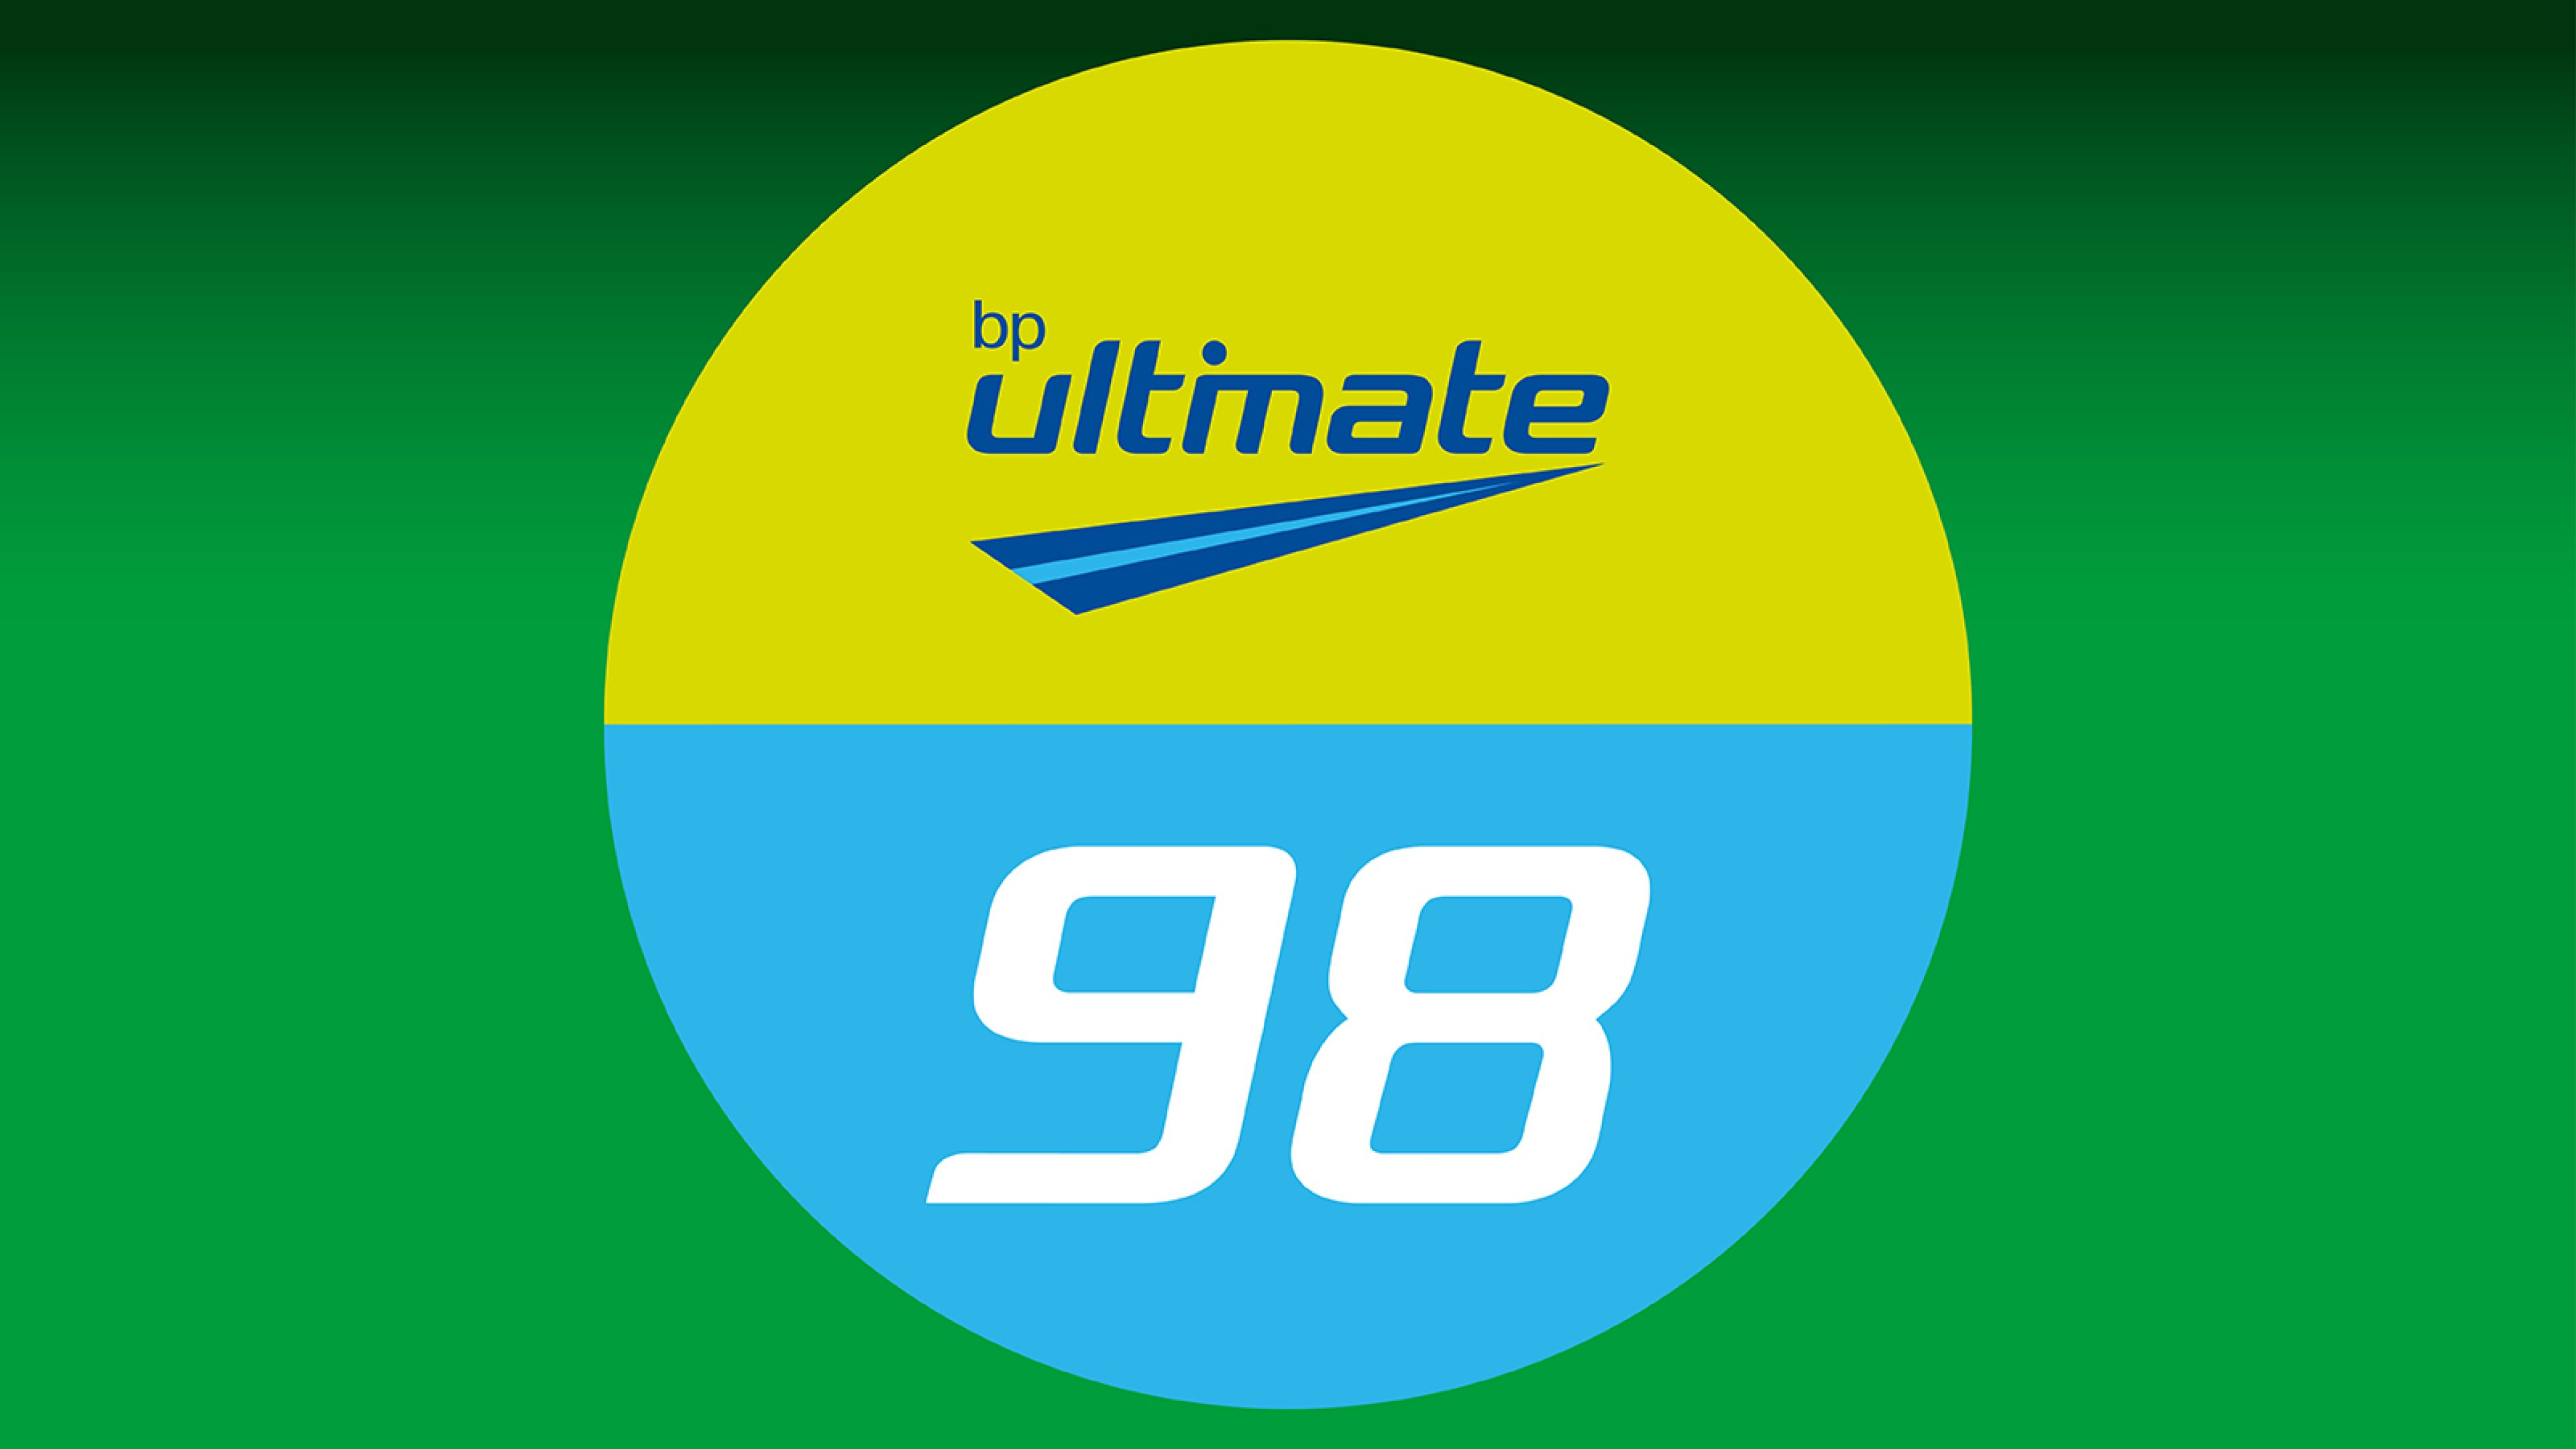 BP Ultimate 98